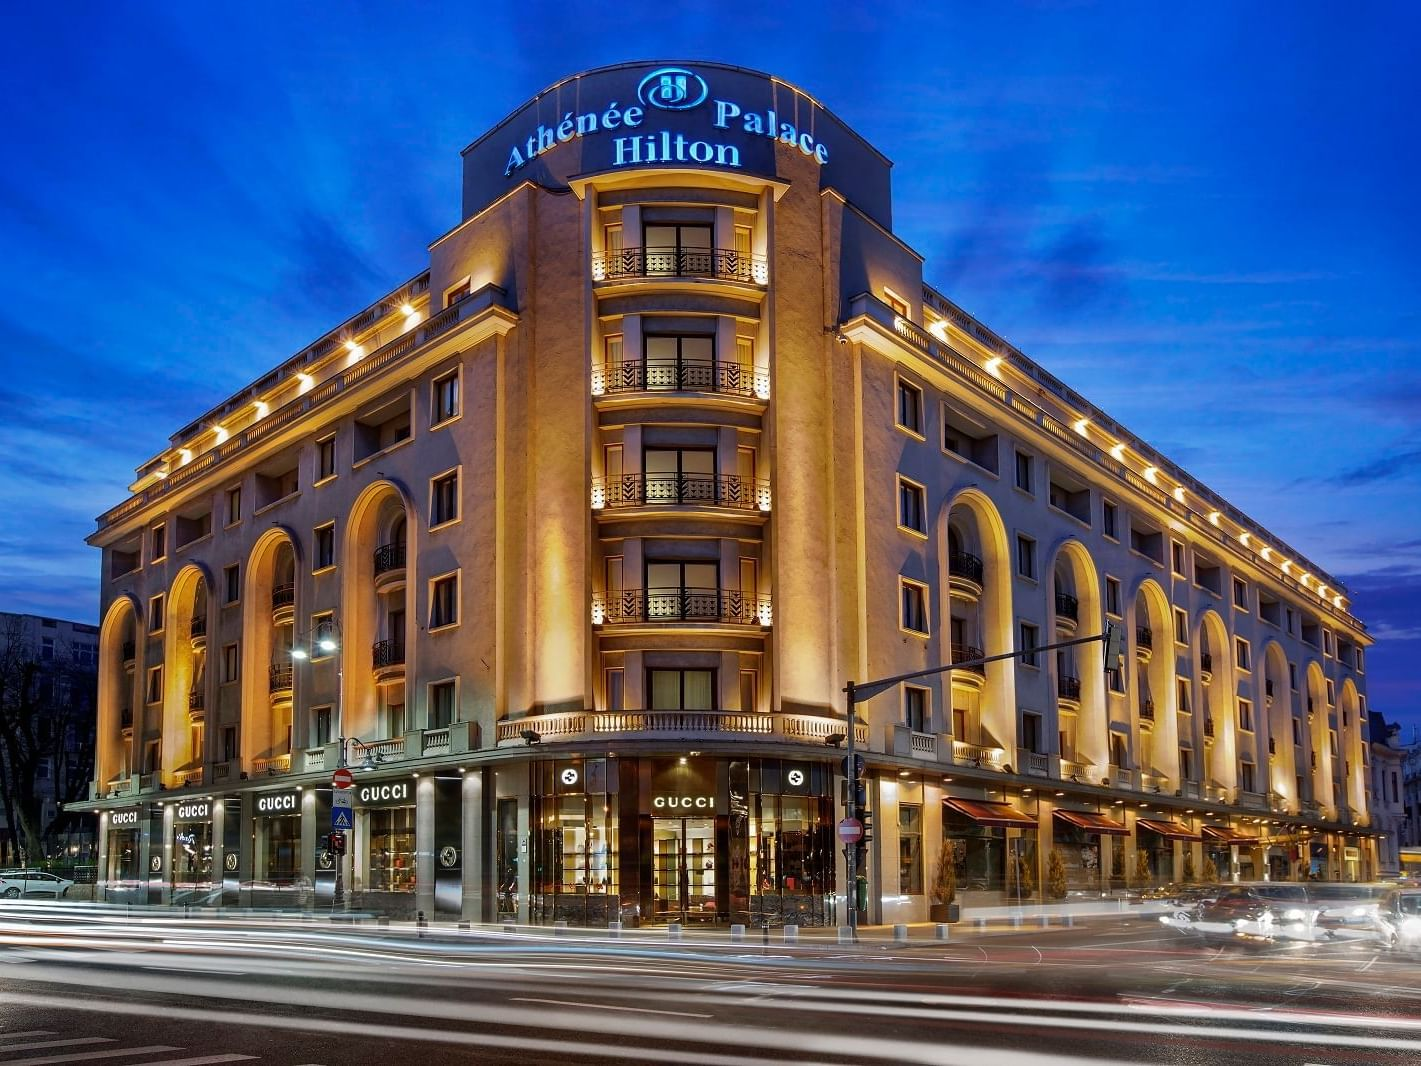 Exterior view of the Hotel at Athenee Palace Hilton Bucharest